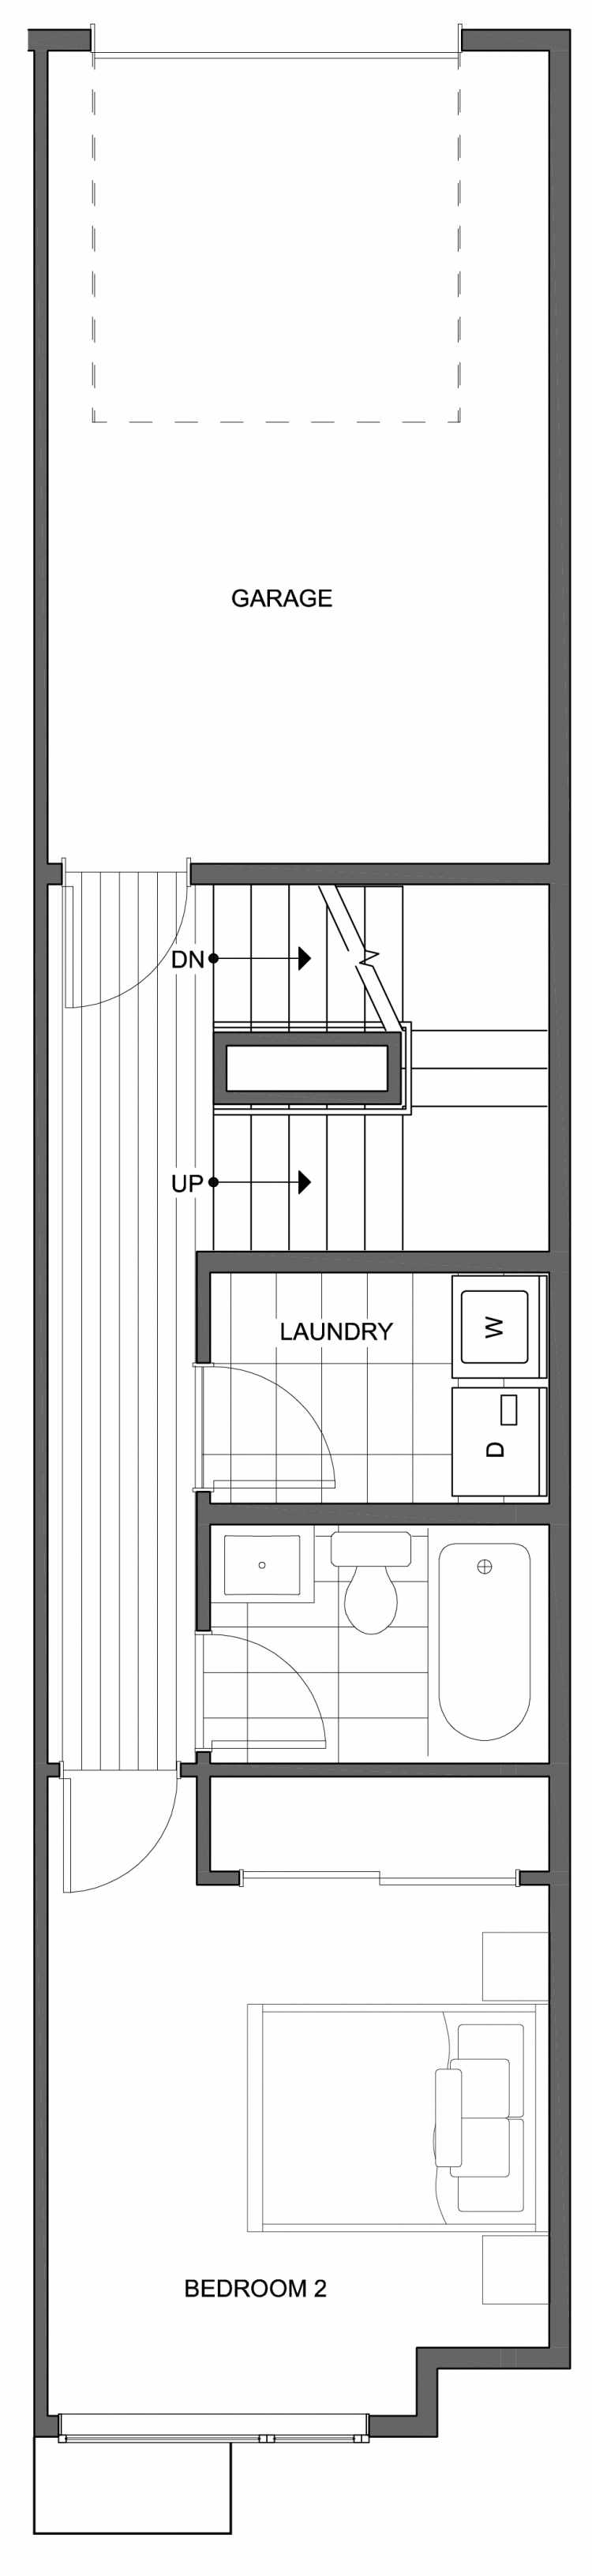 Second Floor Plan of 804 N 46th St, One of the Nino 15 West Townhomes in Fremont by Isola Homes